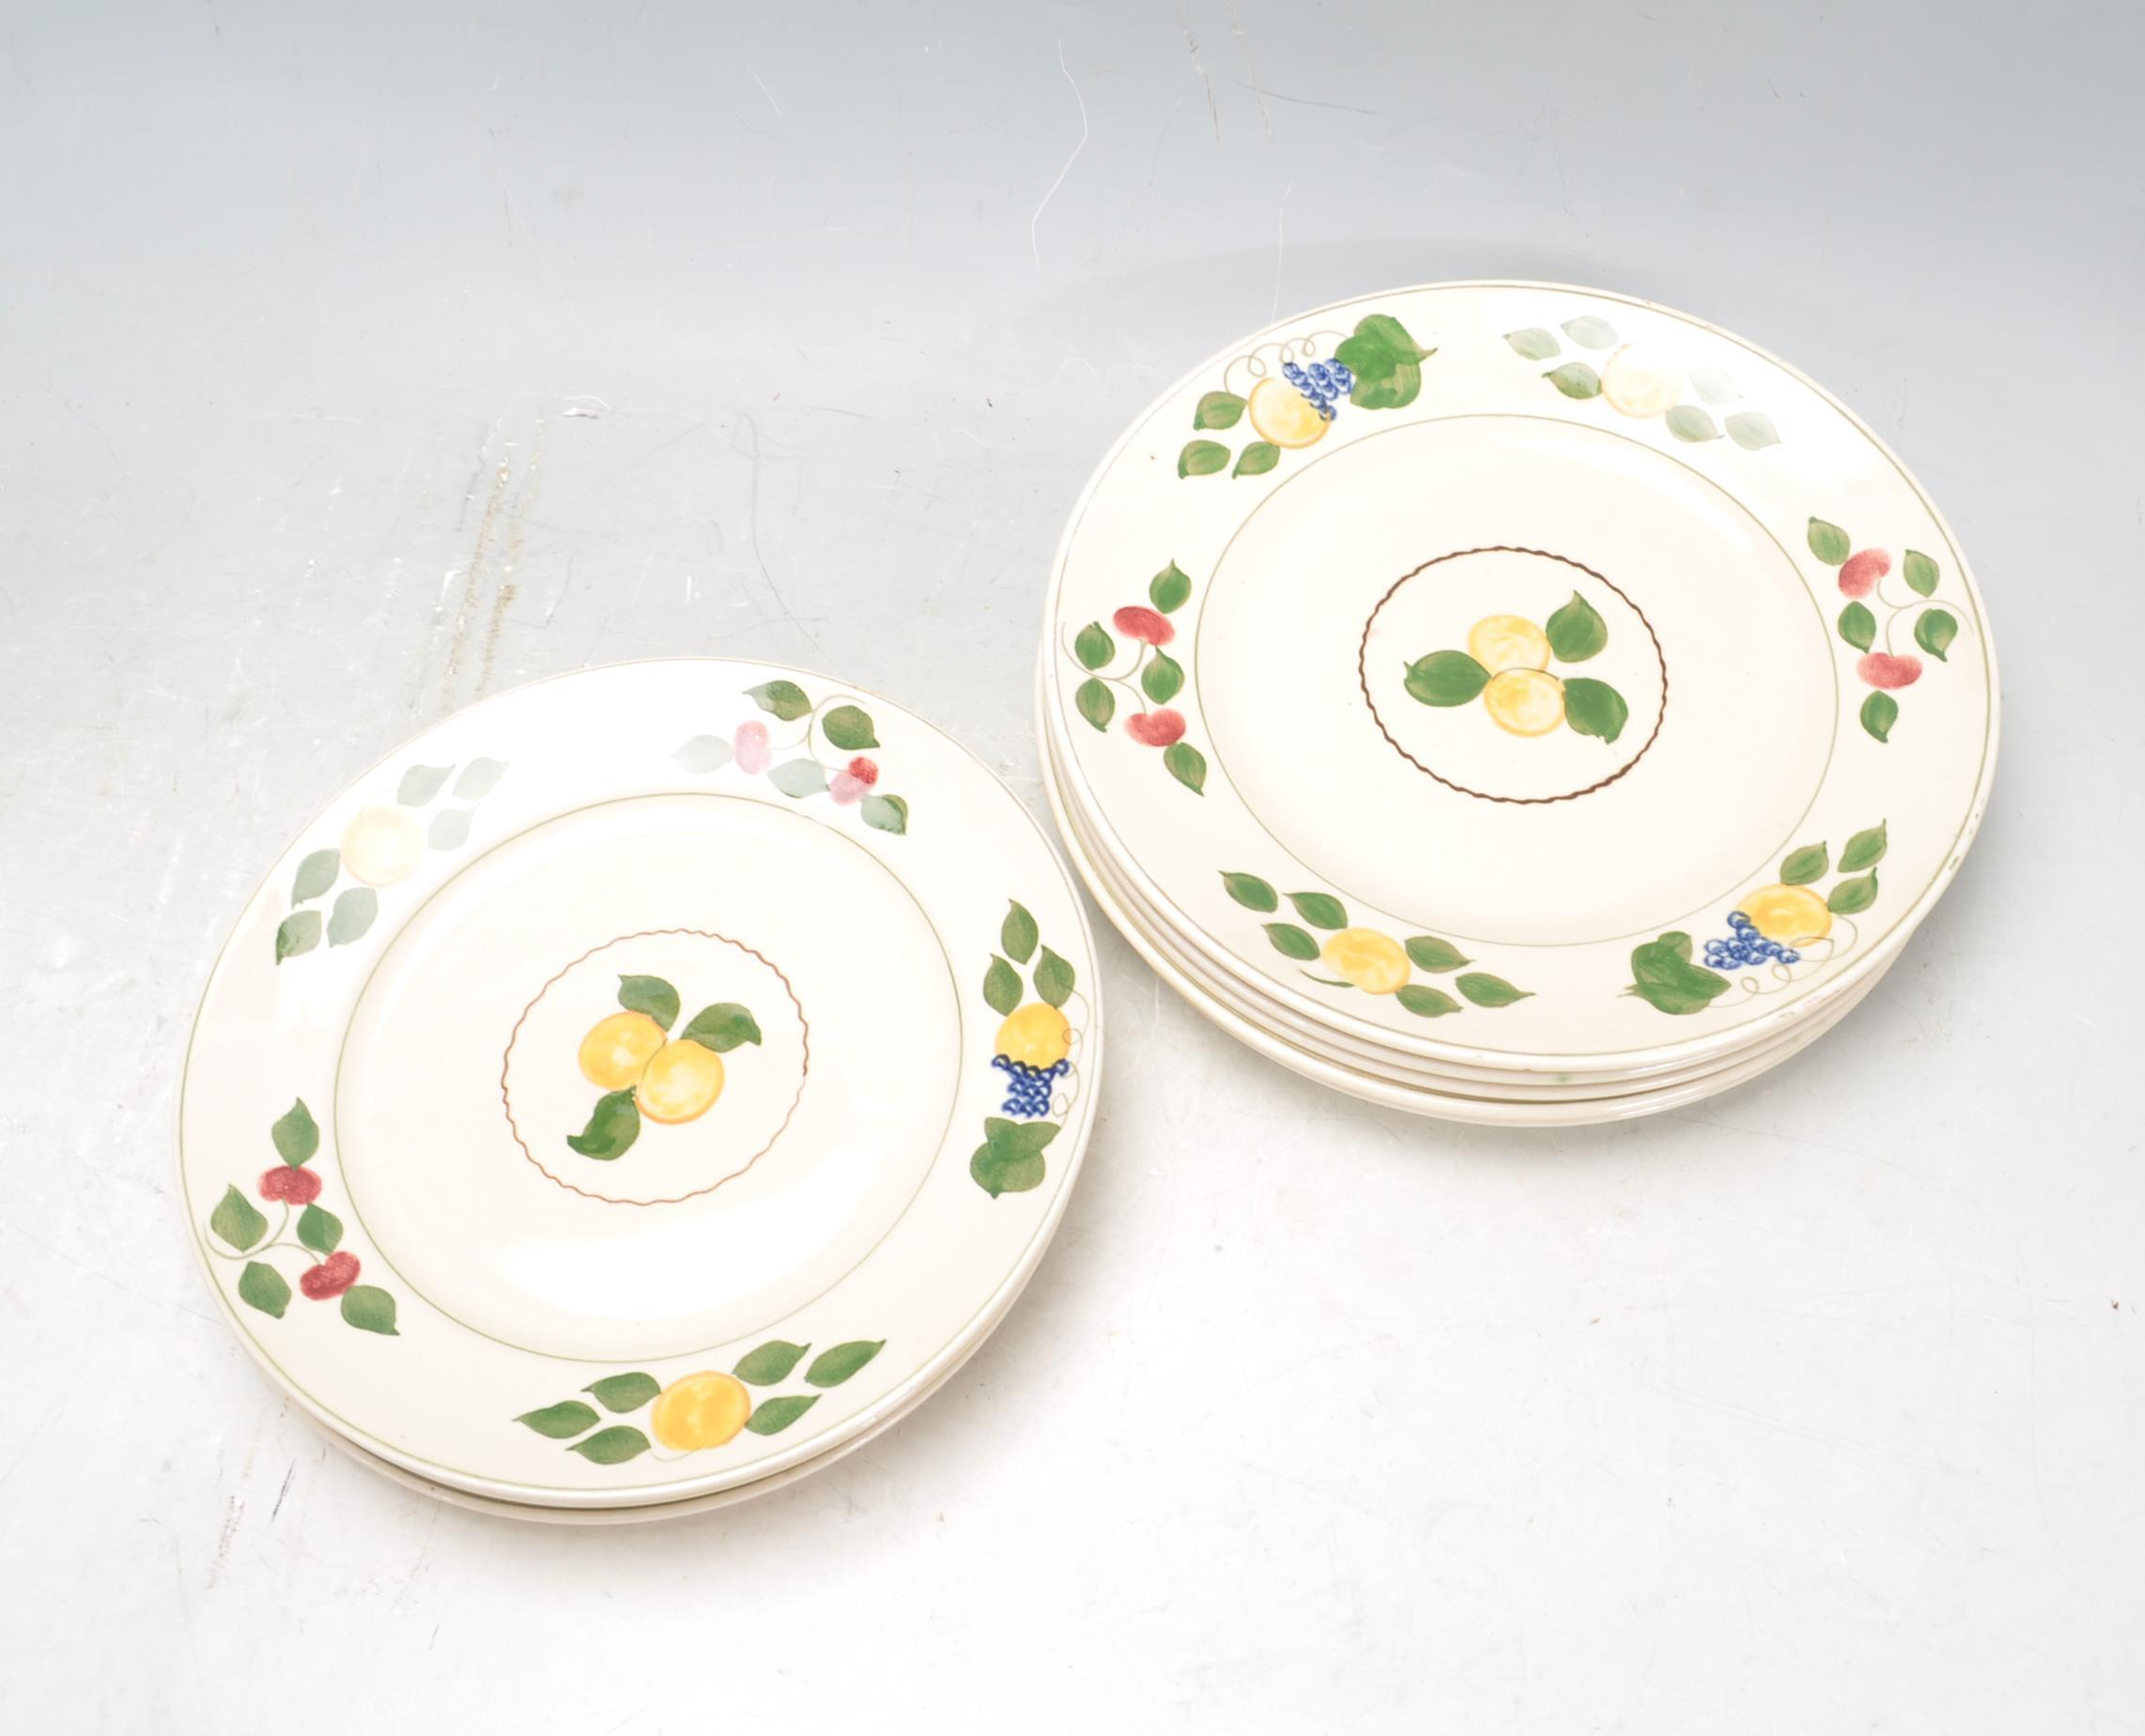 VINTAGE SHELLY TEA SET AND ADAMS PLATES - Image 13 of 14